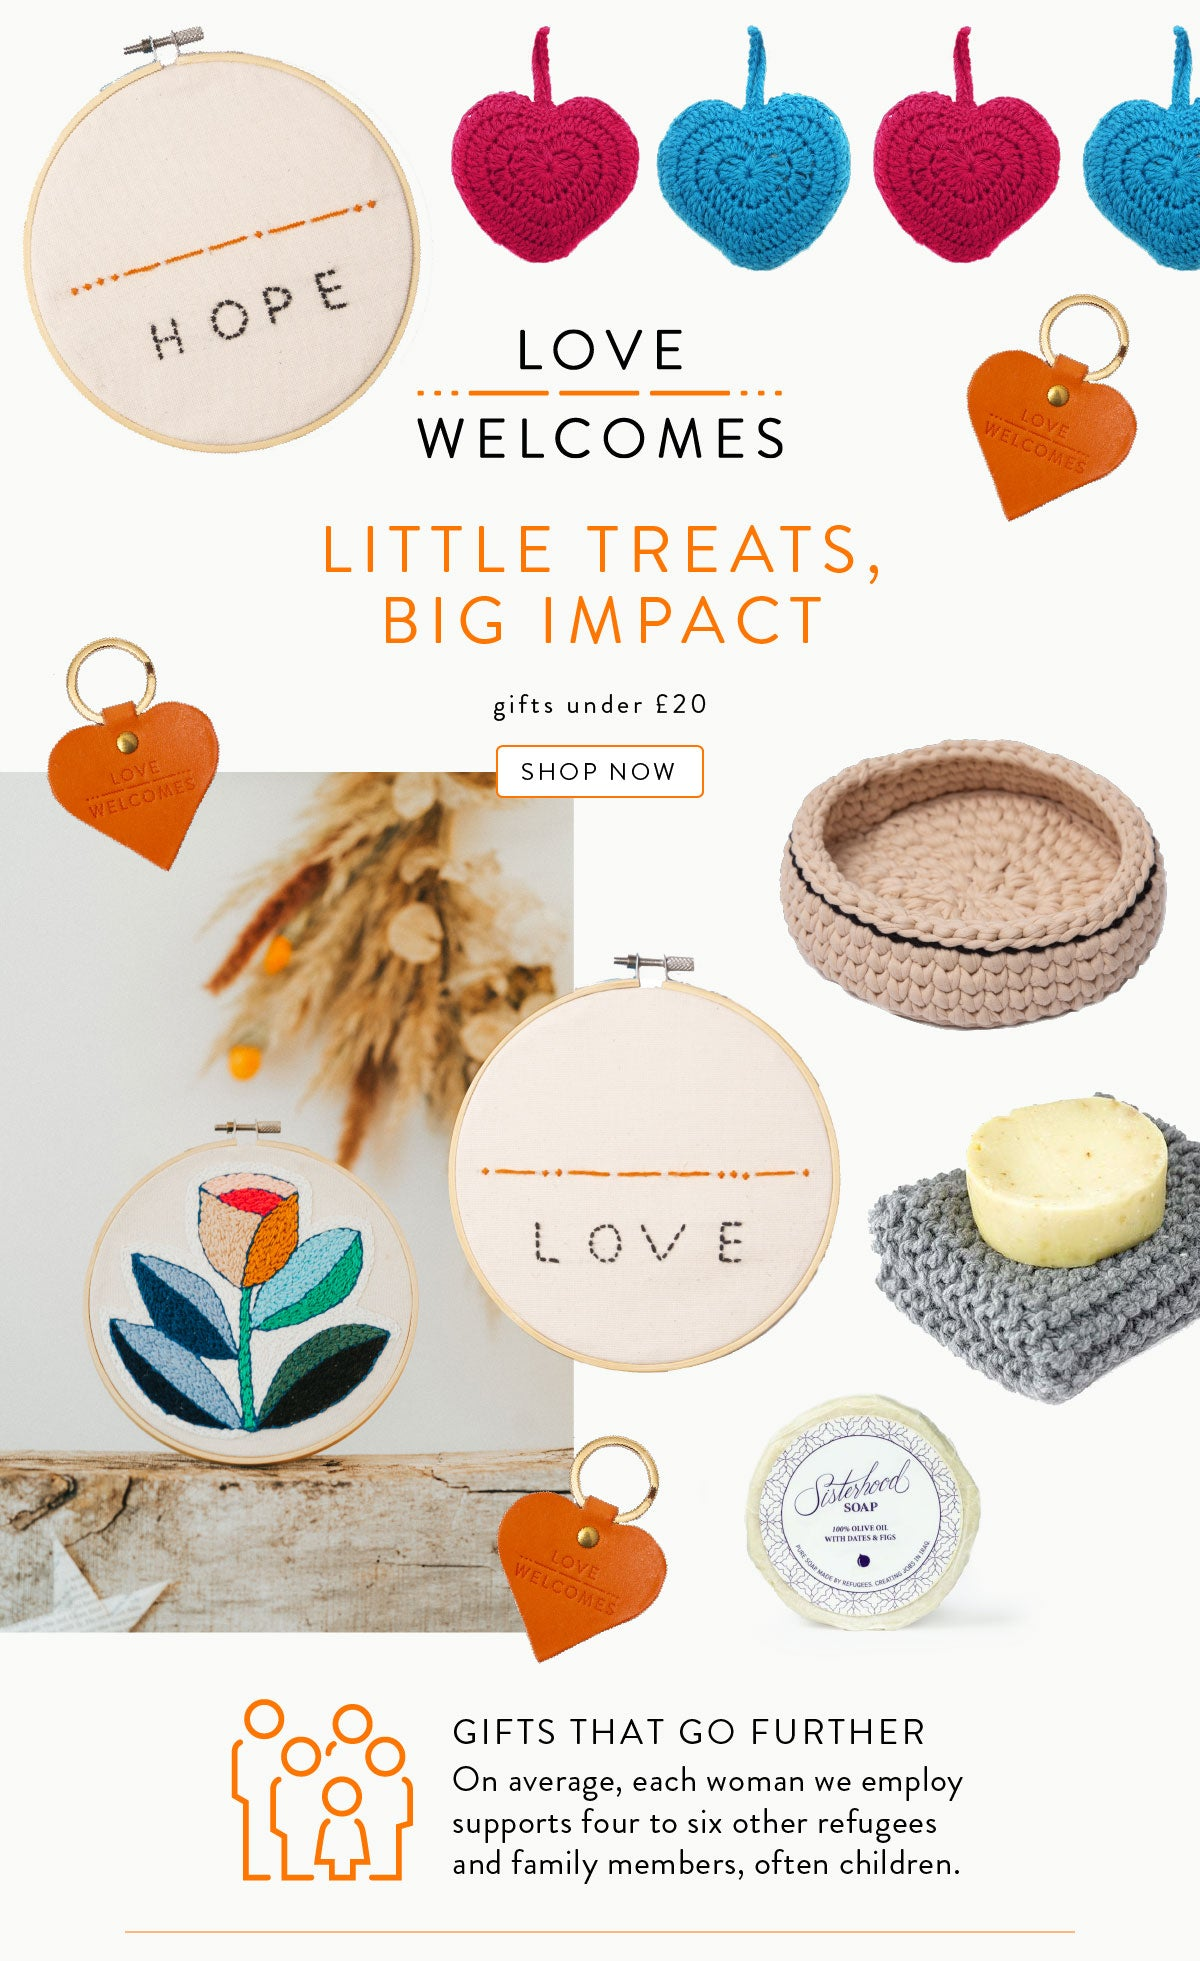 LITTLE TREATS,BIG IMPACT, gifts under £20